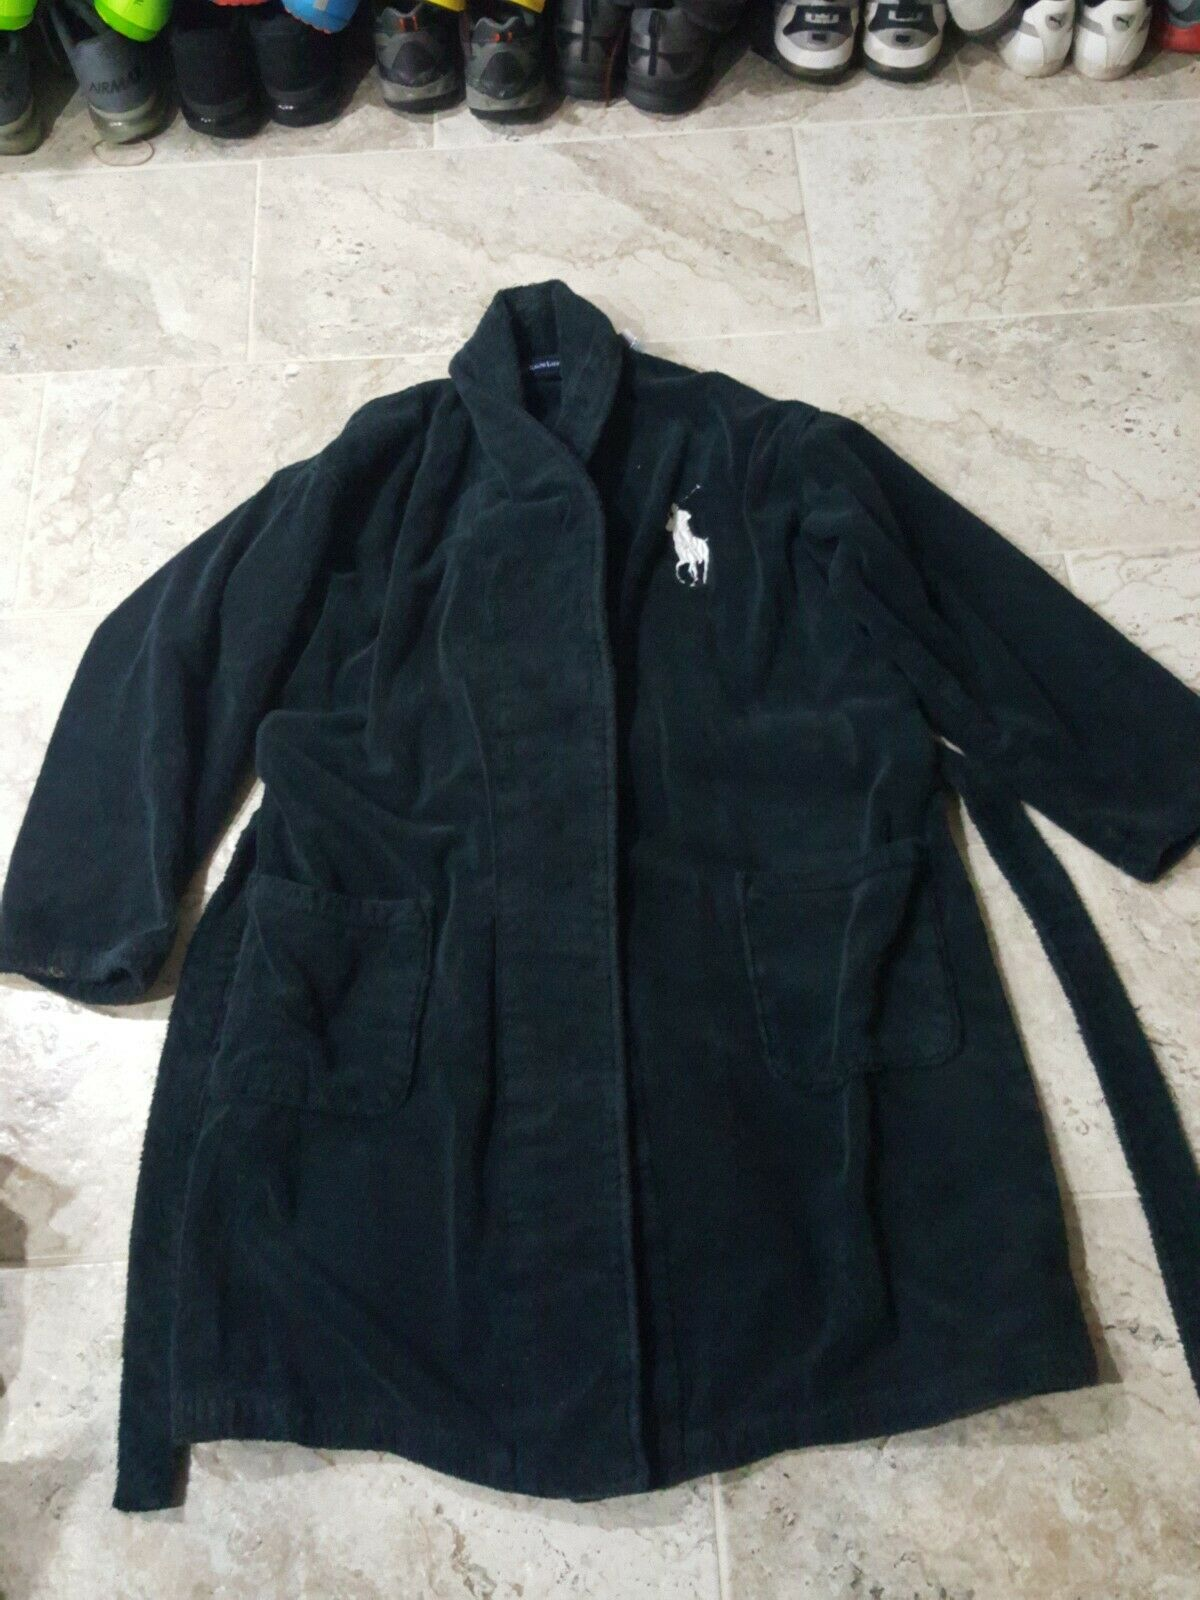 POLO RALPH LAUREN BATH ROBE 1 Größe FITS ALL BIG LOGO  LOOK  ONLY ONE LIKE THIS